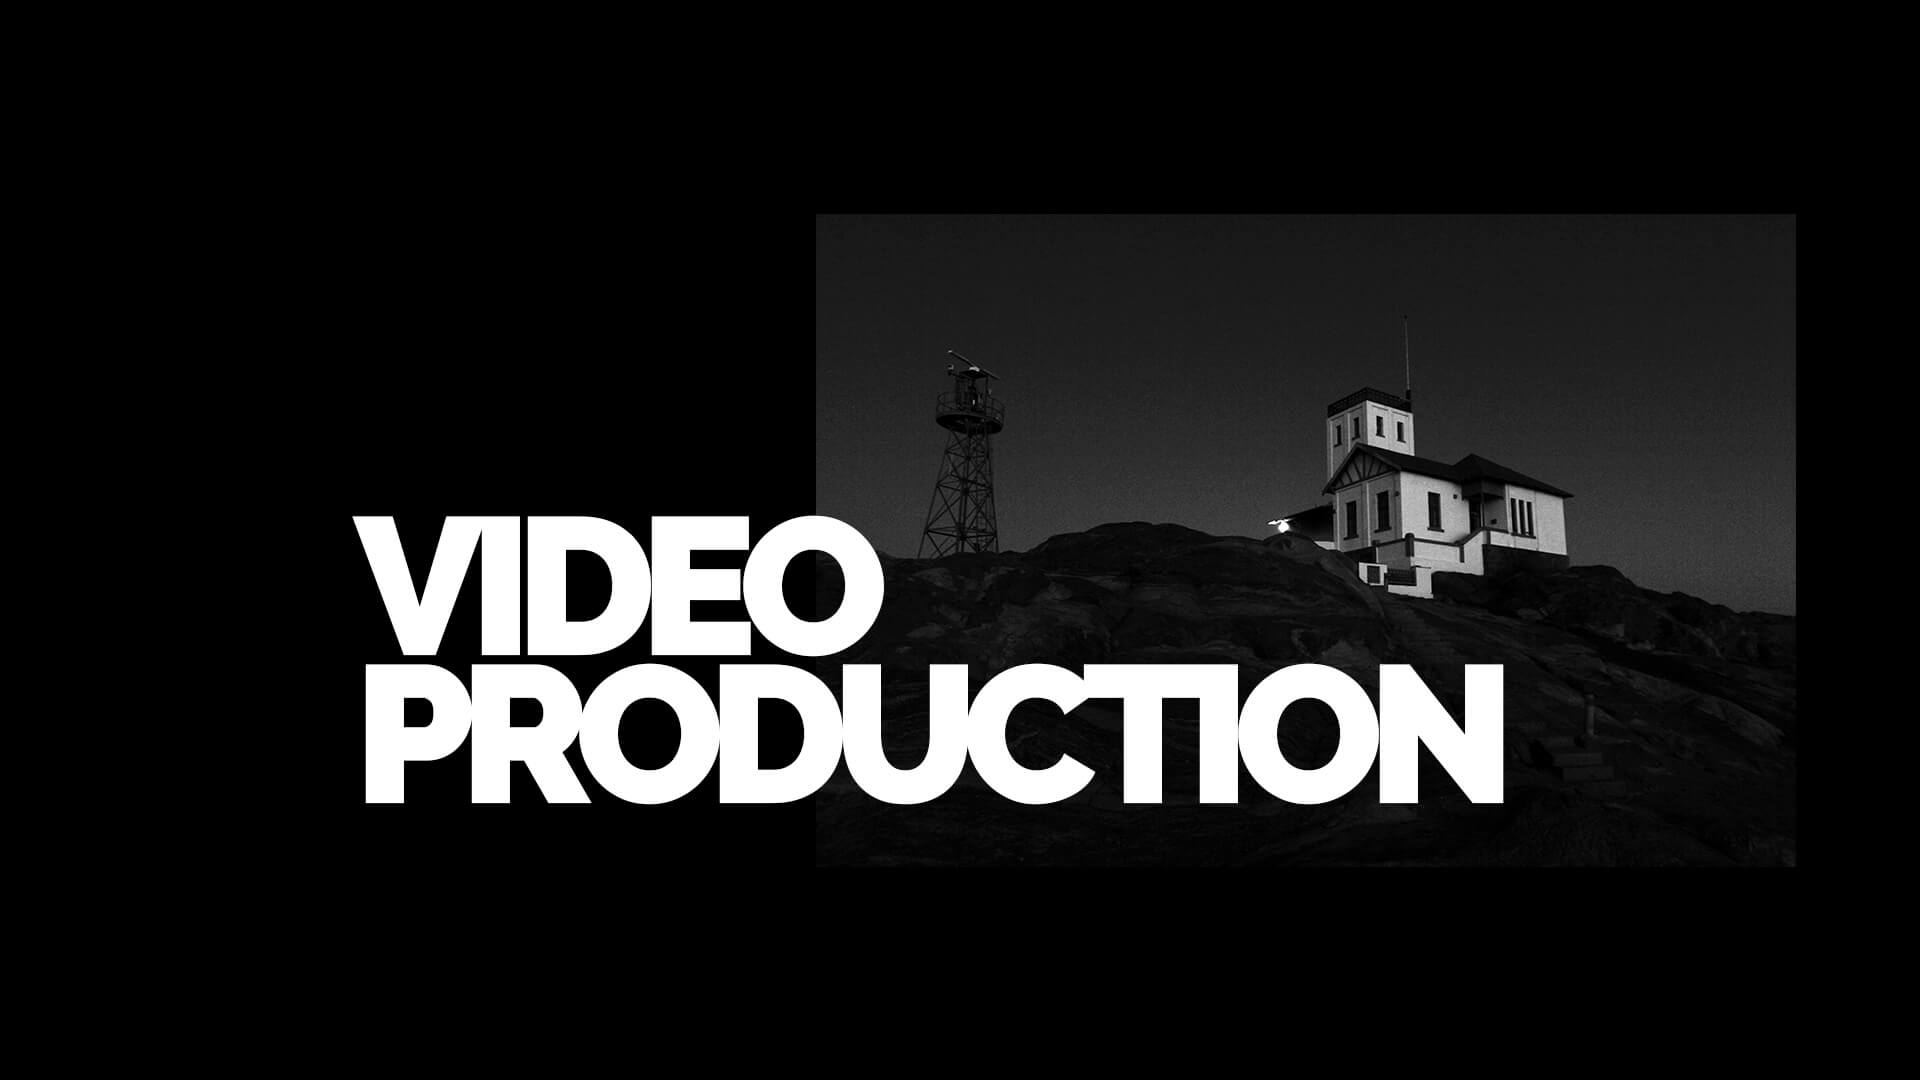 Video production | Epitome